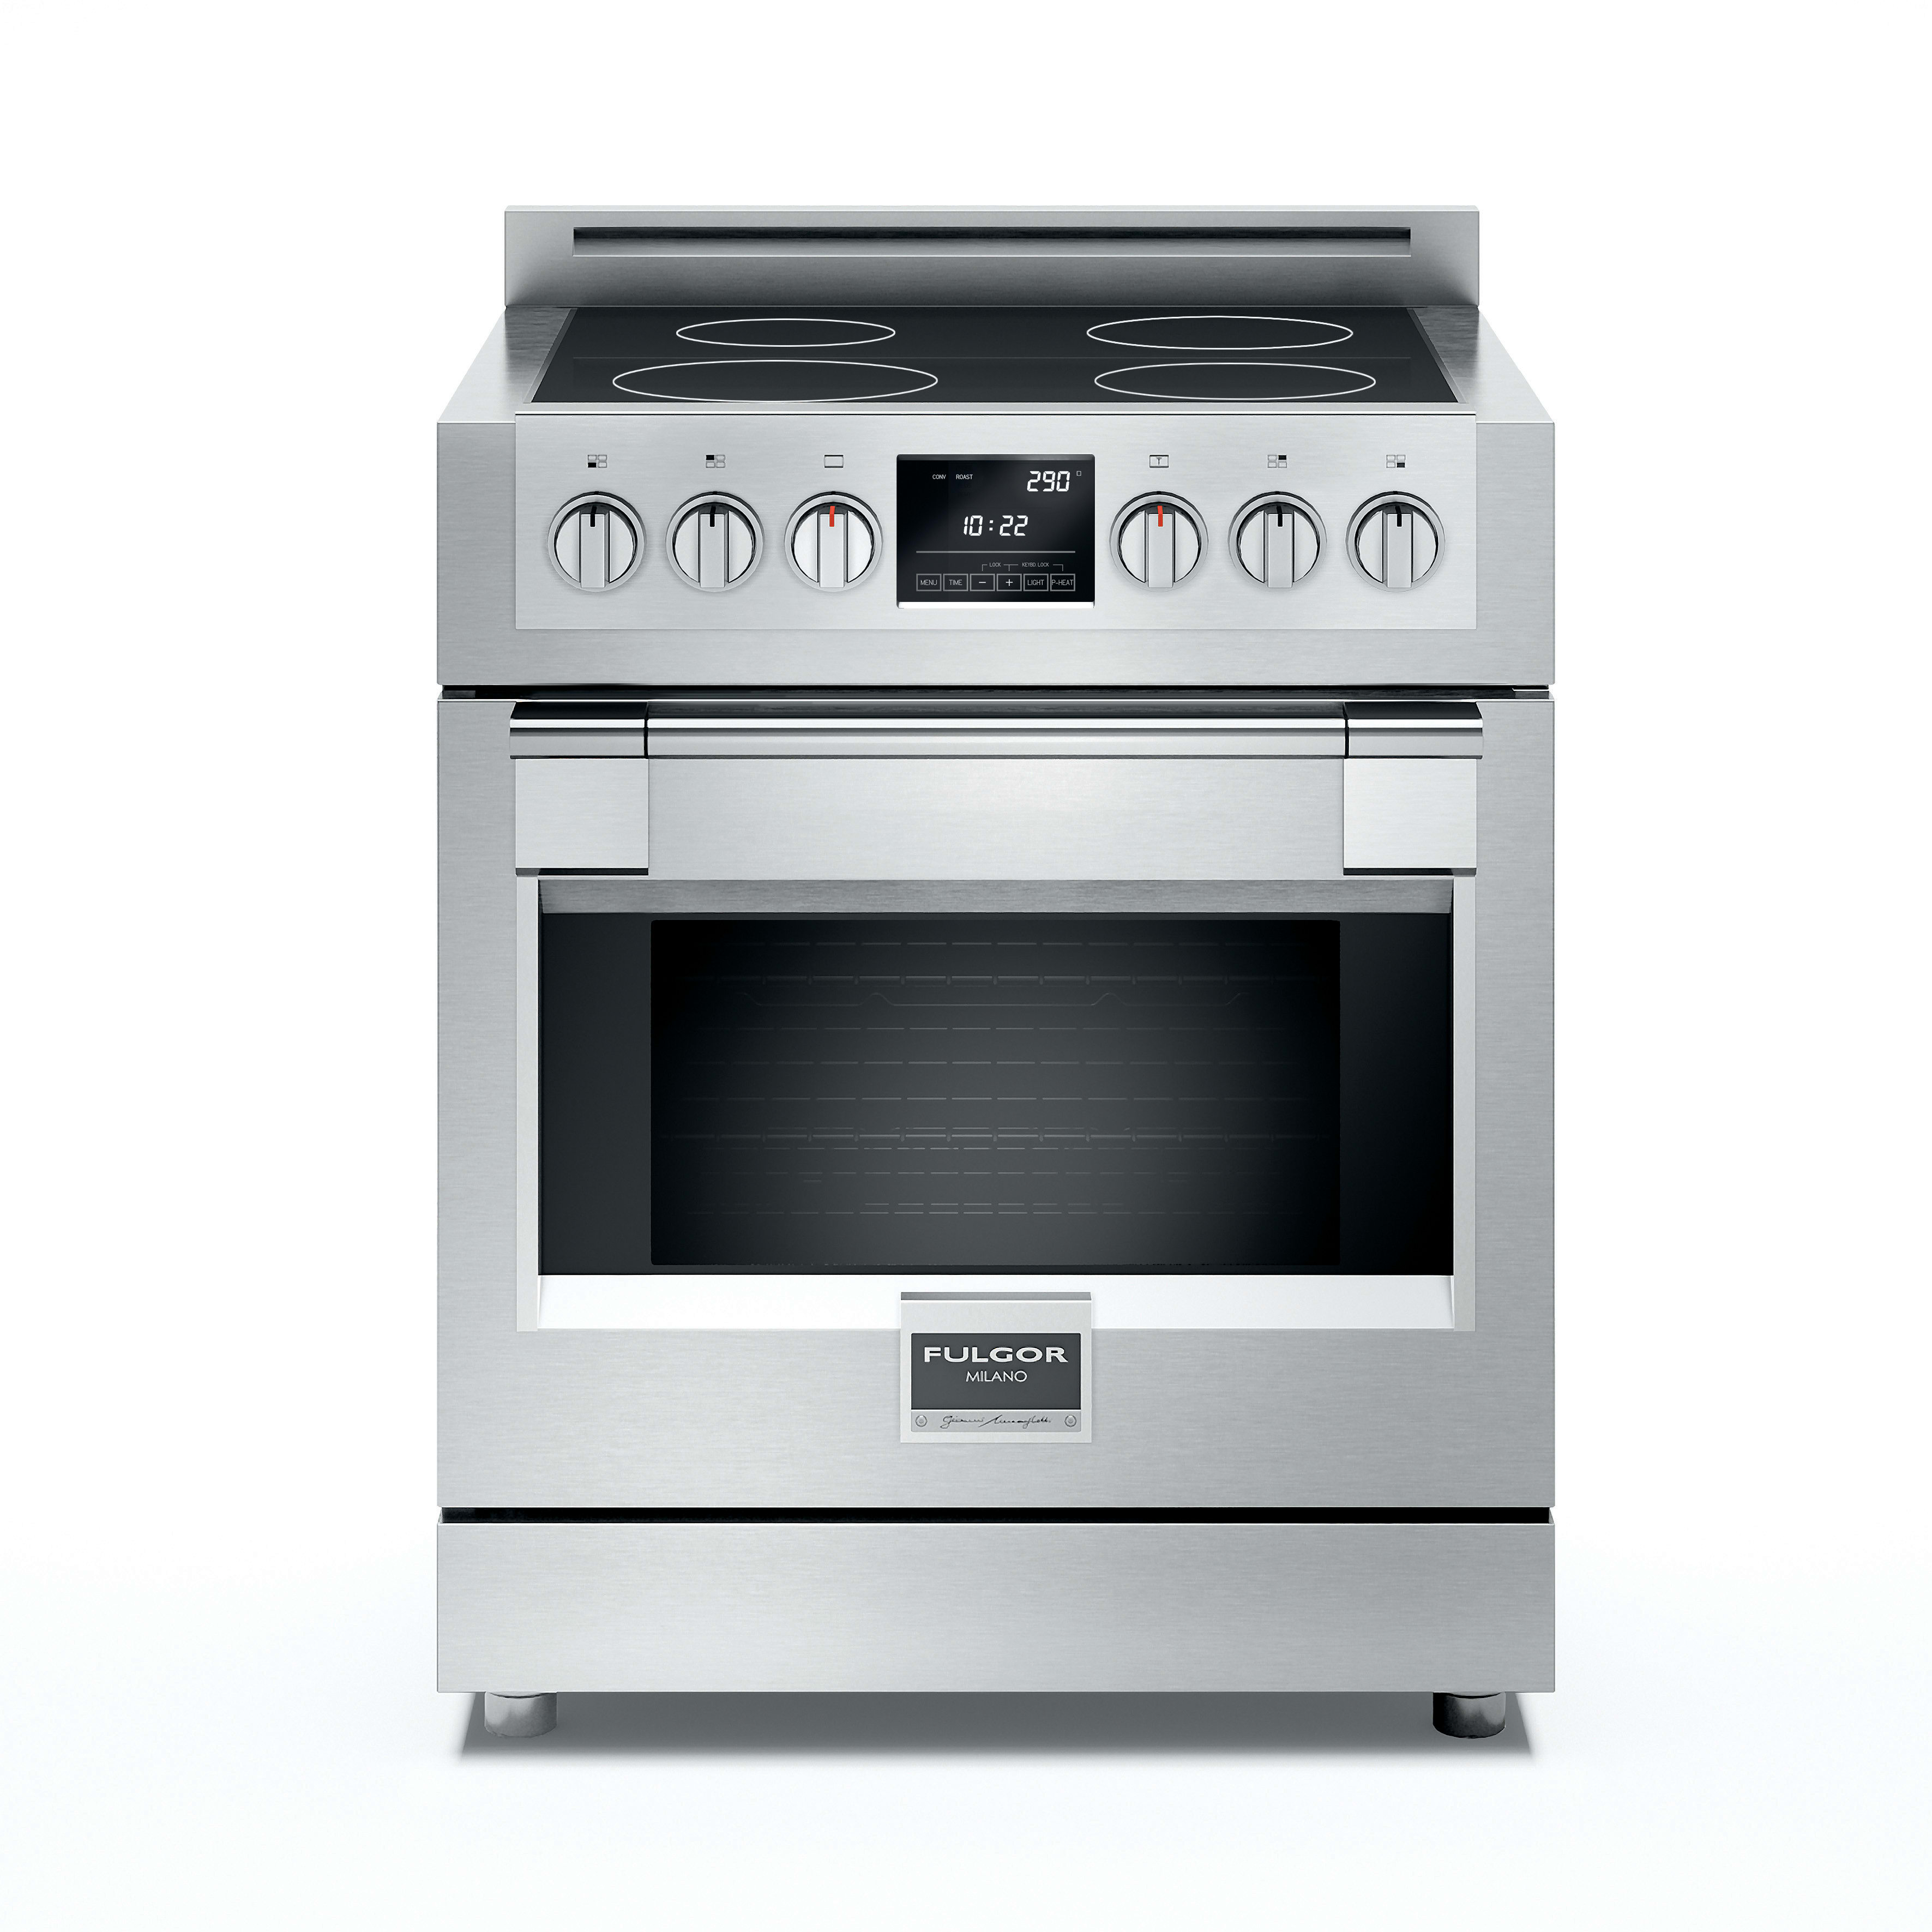 Fulgor Milano F6PIR304S1 30 Inch Freestanding Induction Range with ...